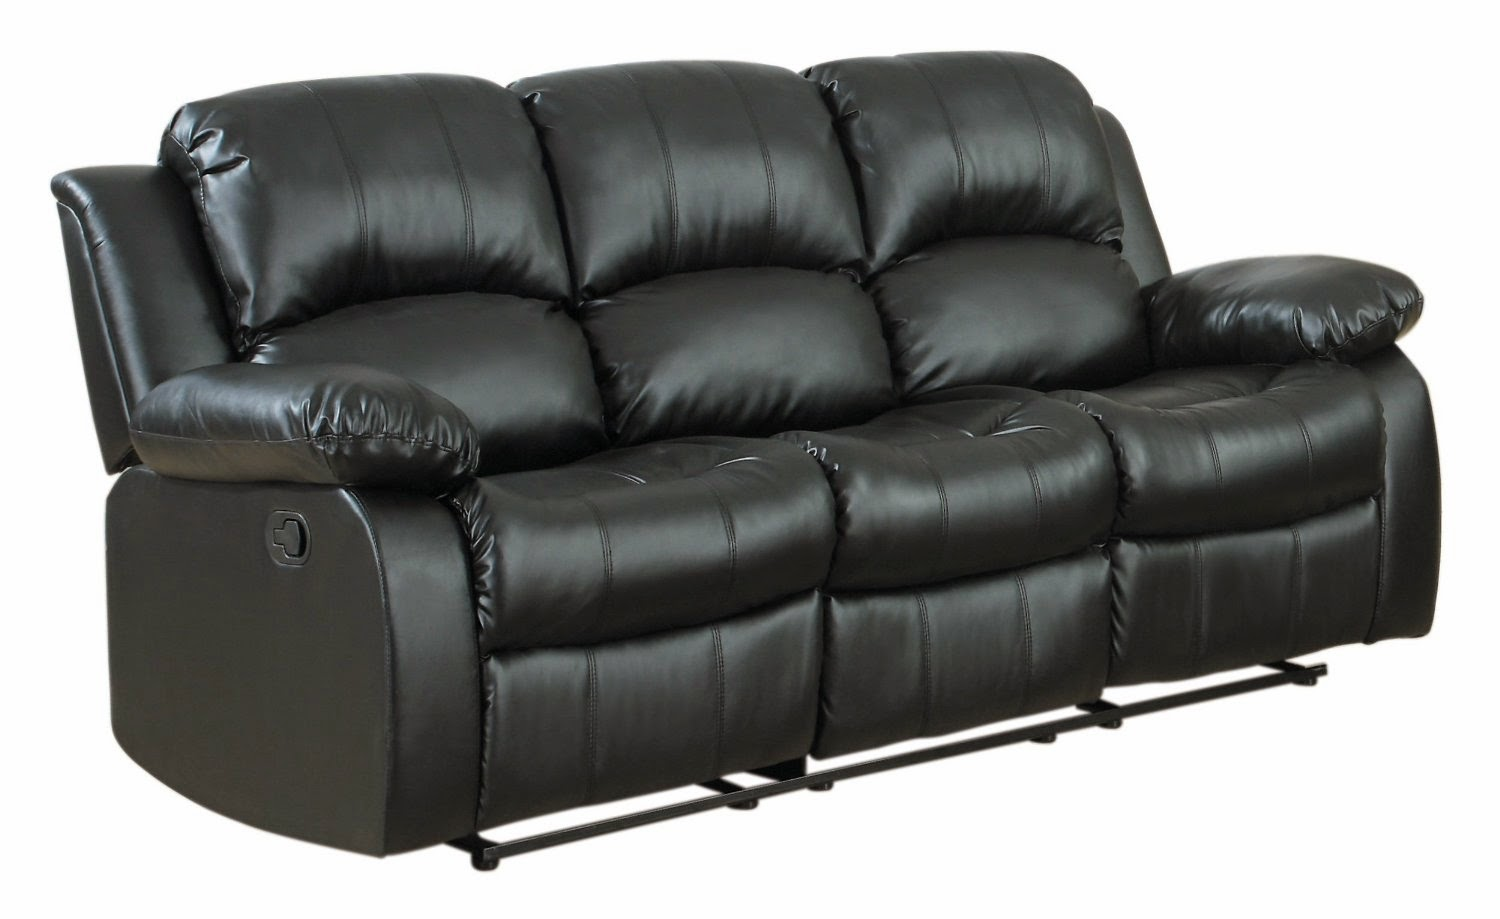 Top Seller Reclining And Recliner Sofa Loveseat: Power Reclining Sofa Costco